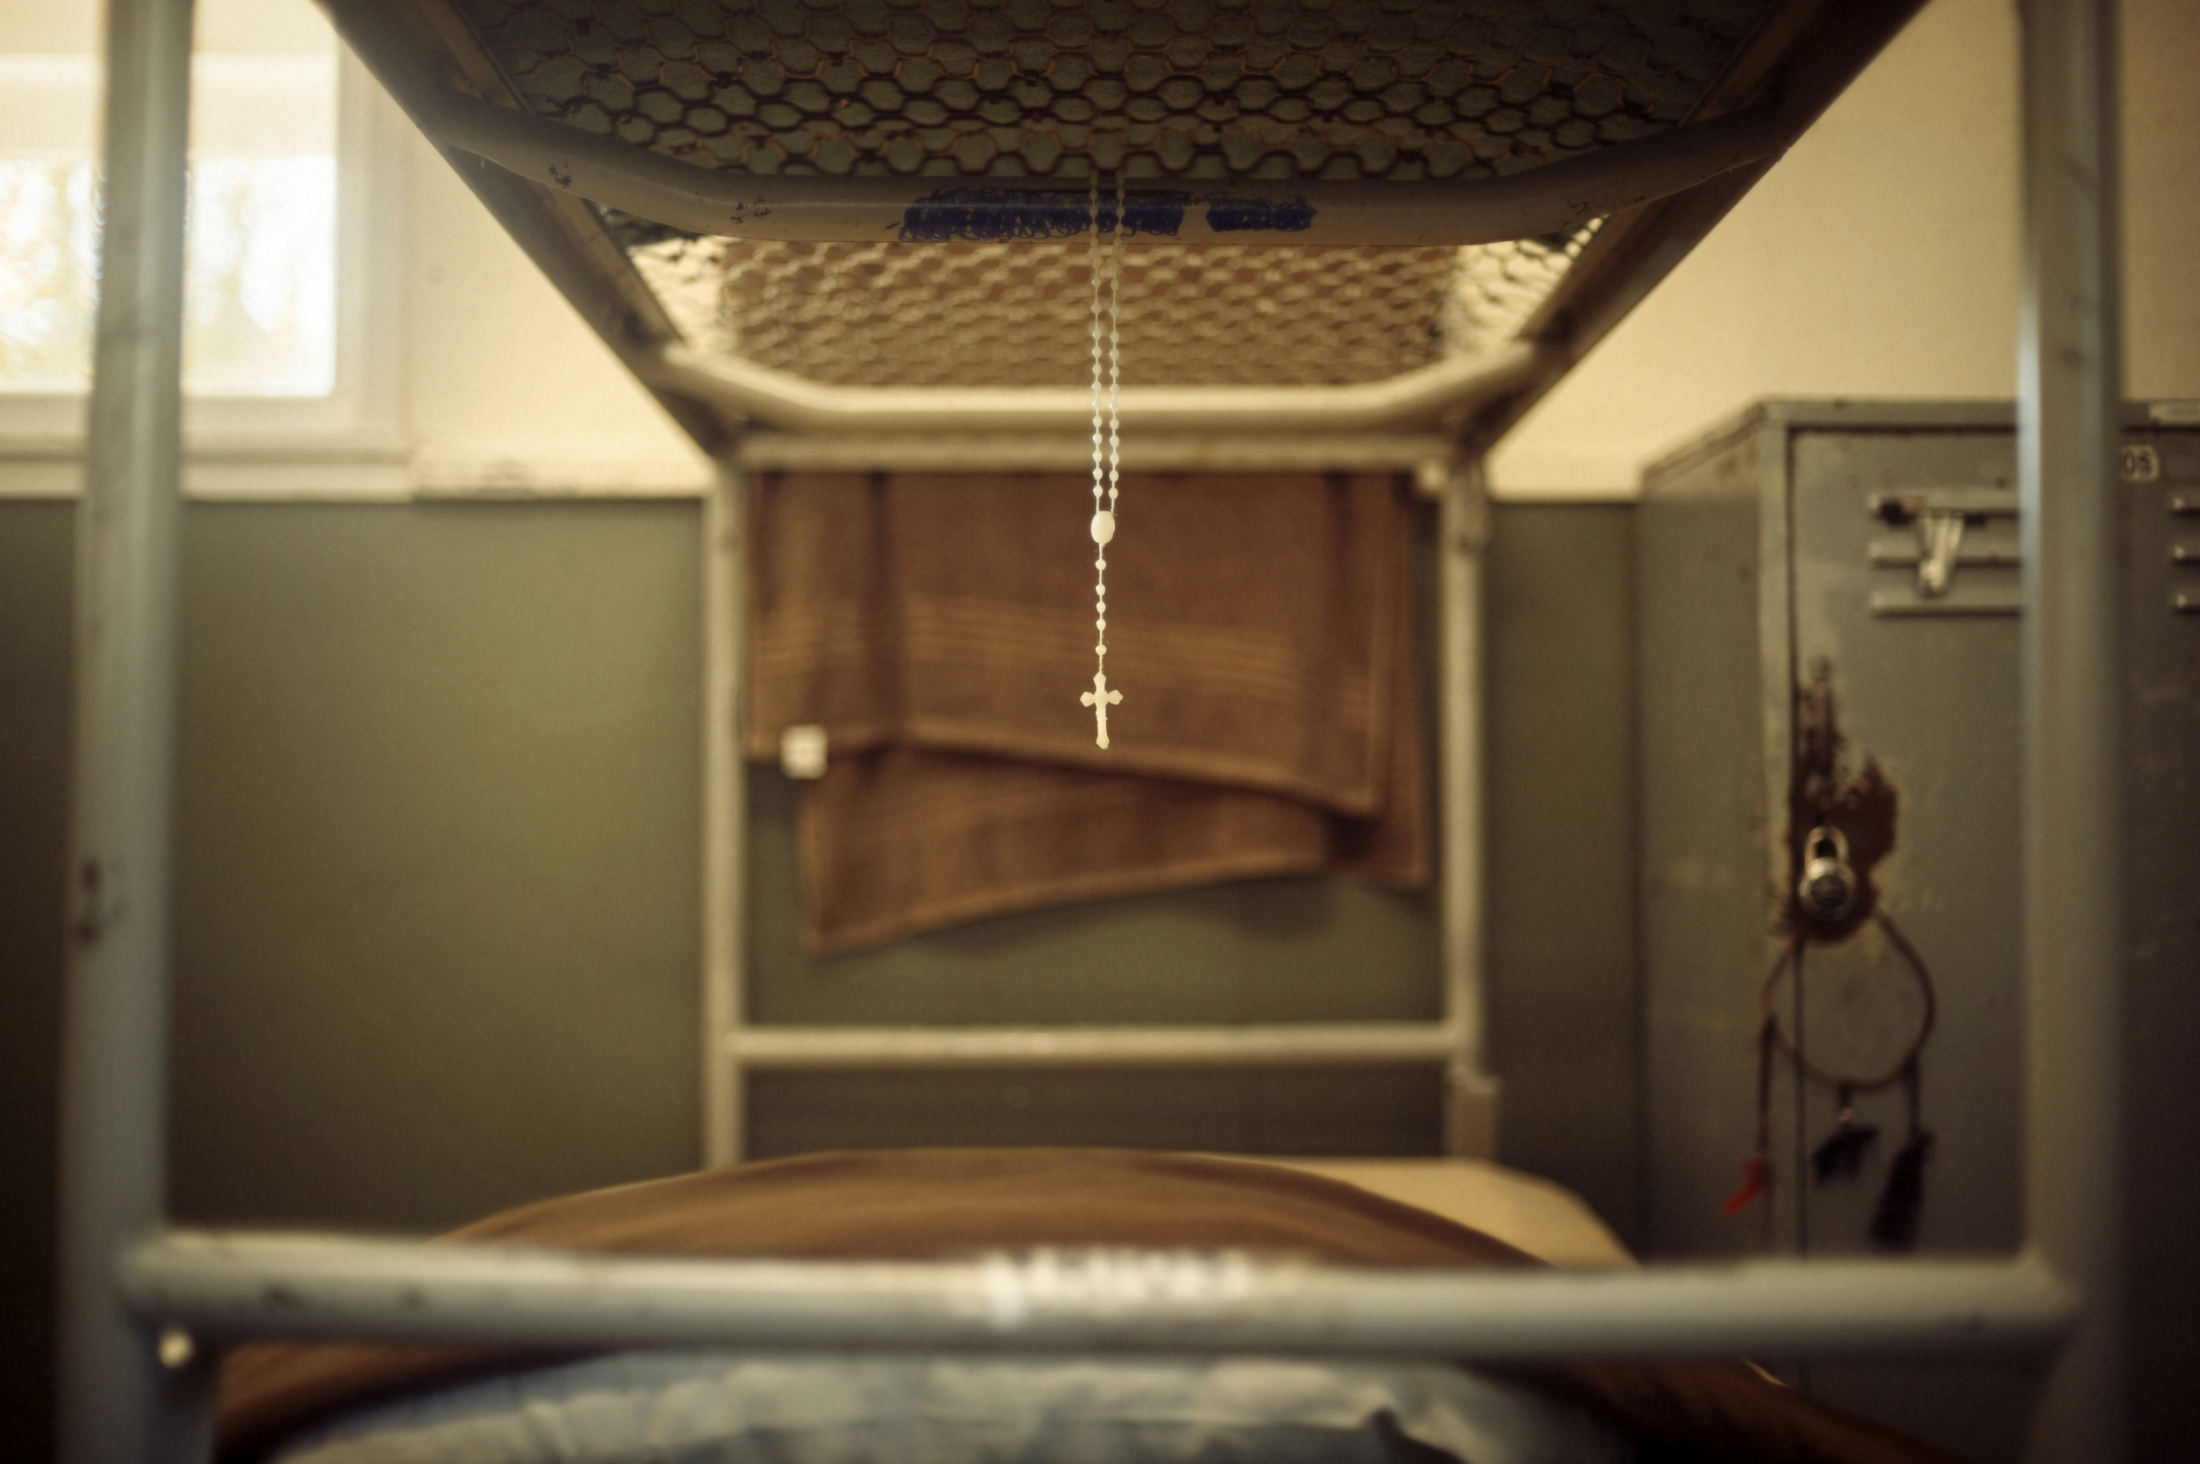 Small items from home, like Rosary beads, are allowed at the prison camp to allow a connection between the inmate's and their culture.